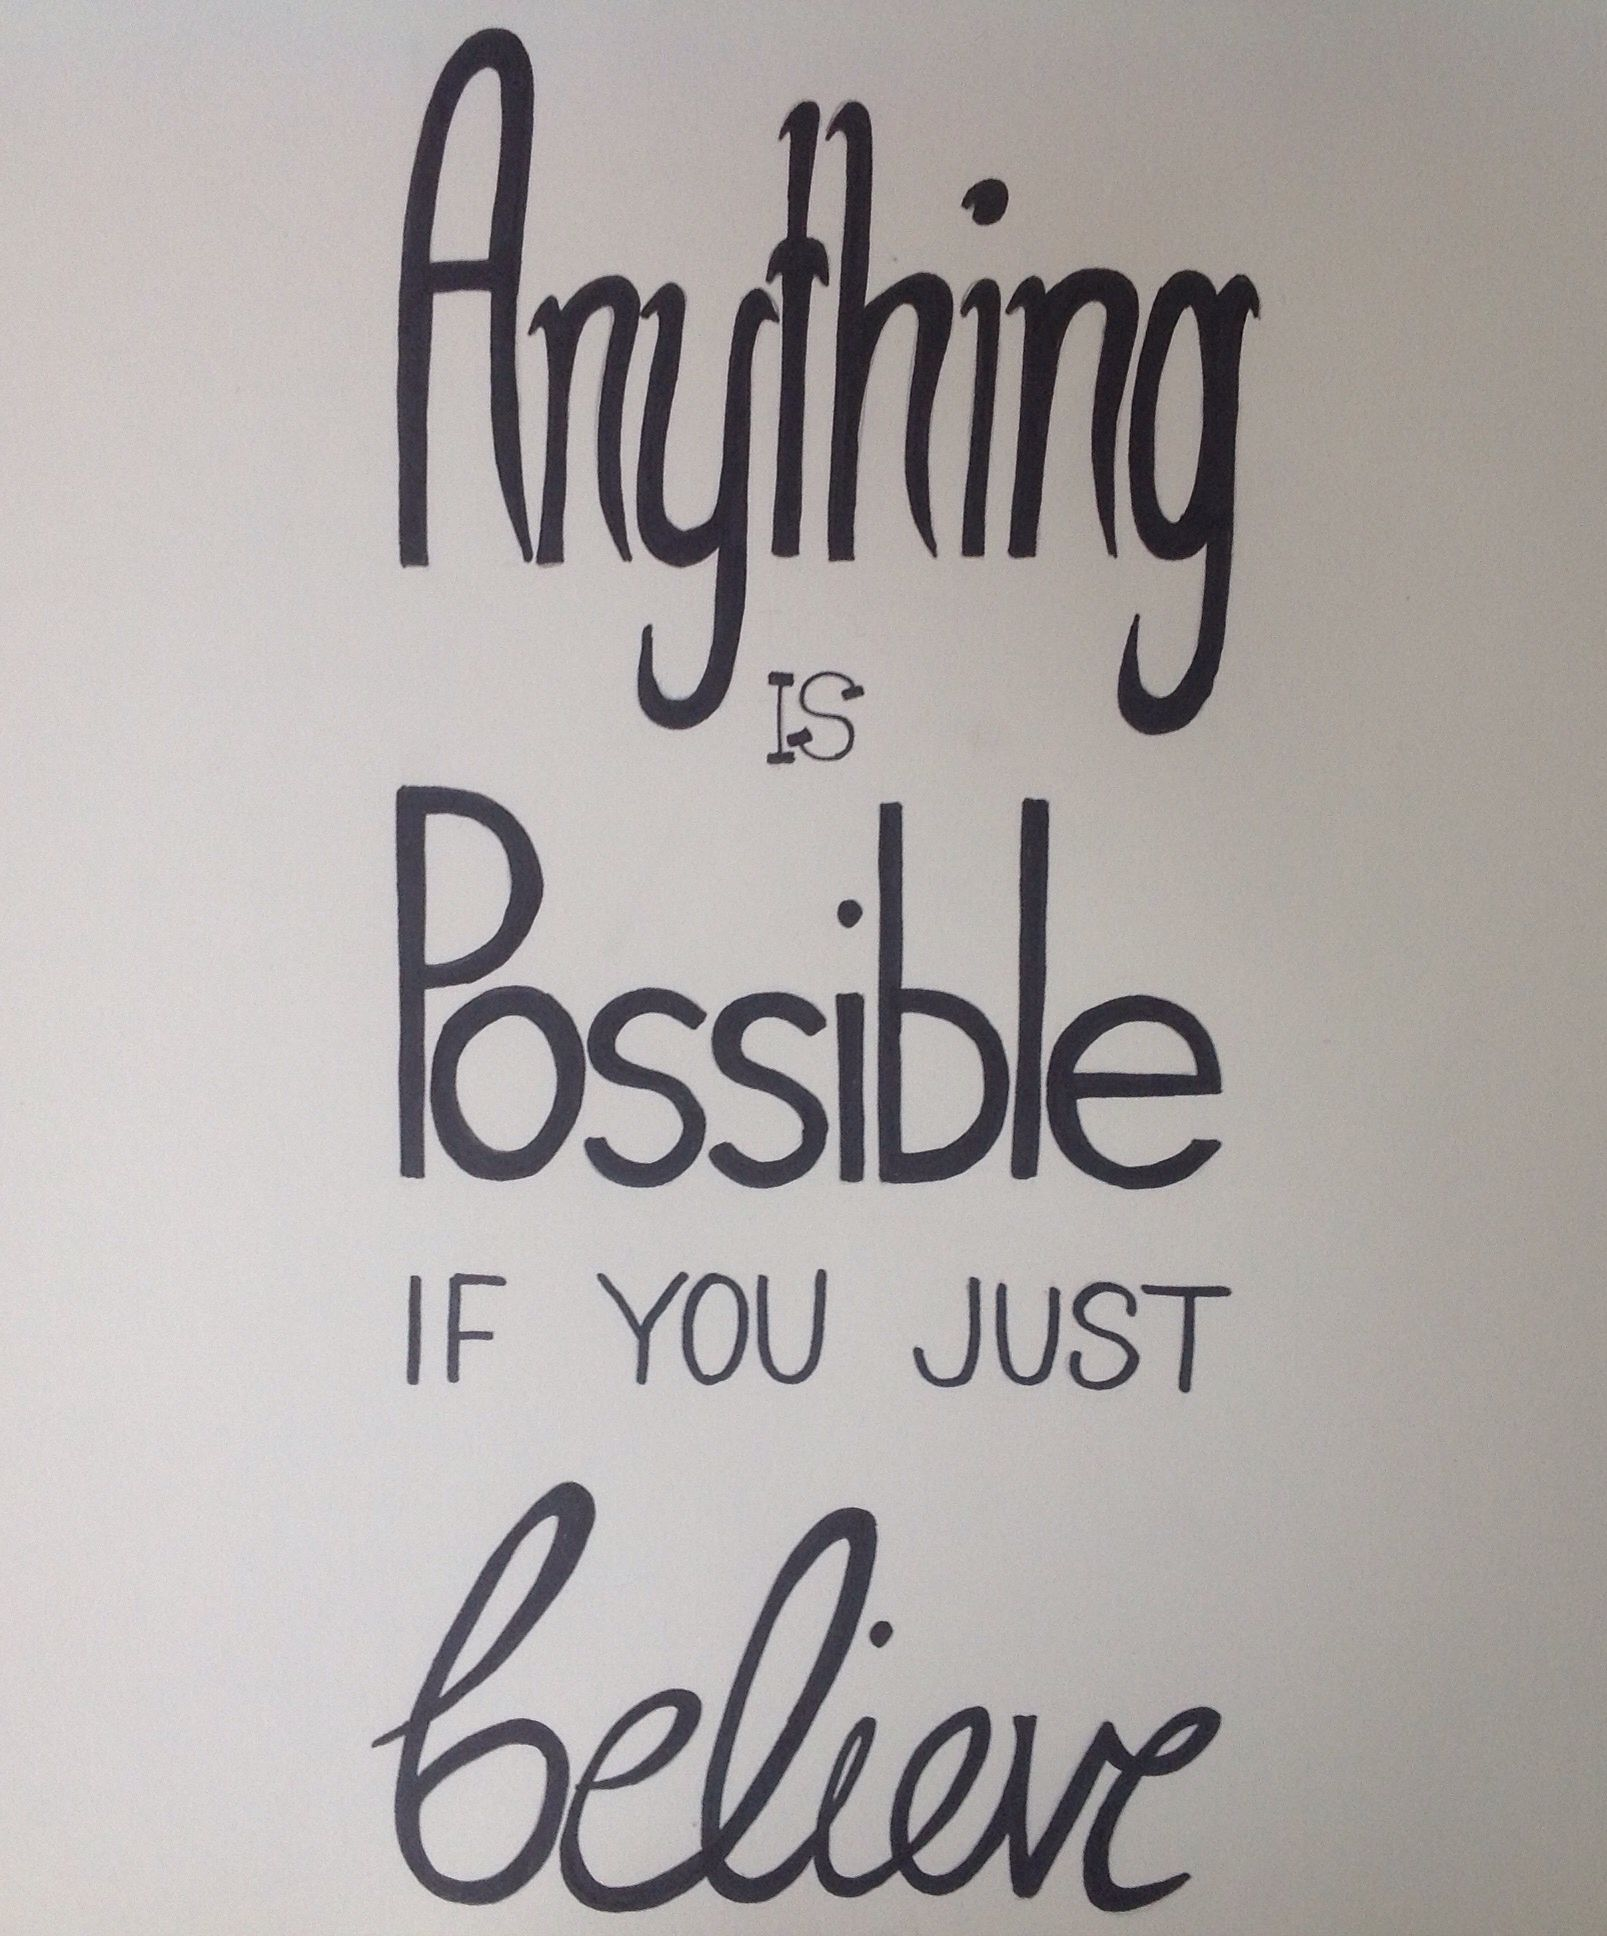 A Cinderella Story Page 6 Anything Is Possible If You Just Believe Carter Faith Quotes Just Believe A Cinderella Story